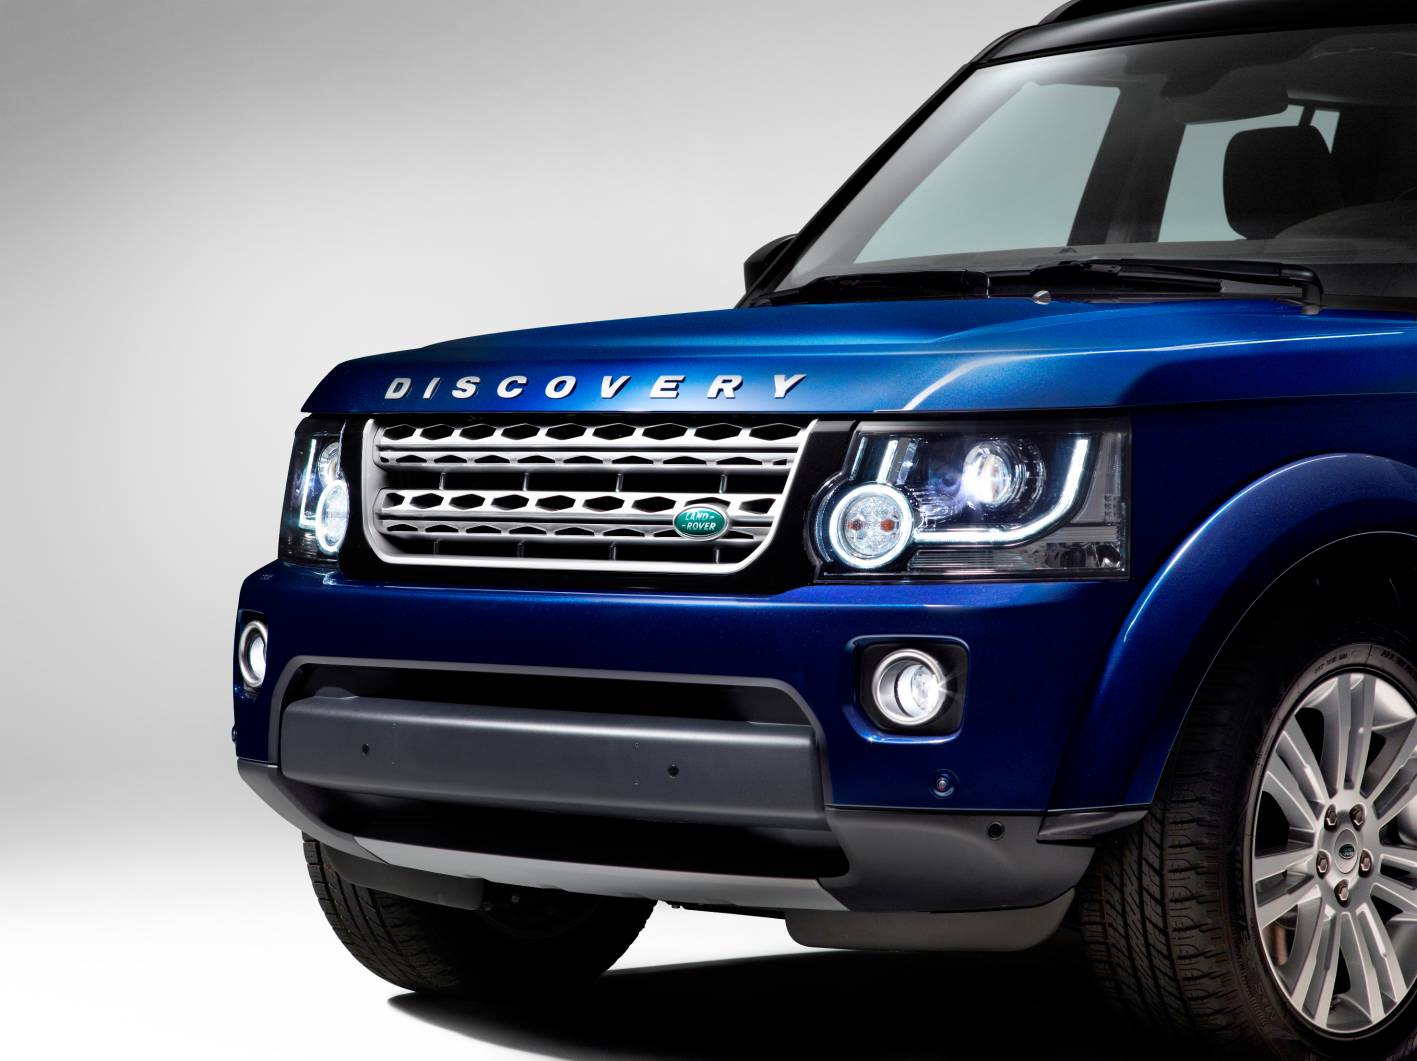 Land Rover Models >> News - 2014 Land Rover Discovery Major Updates